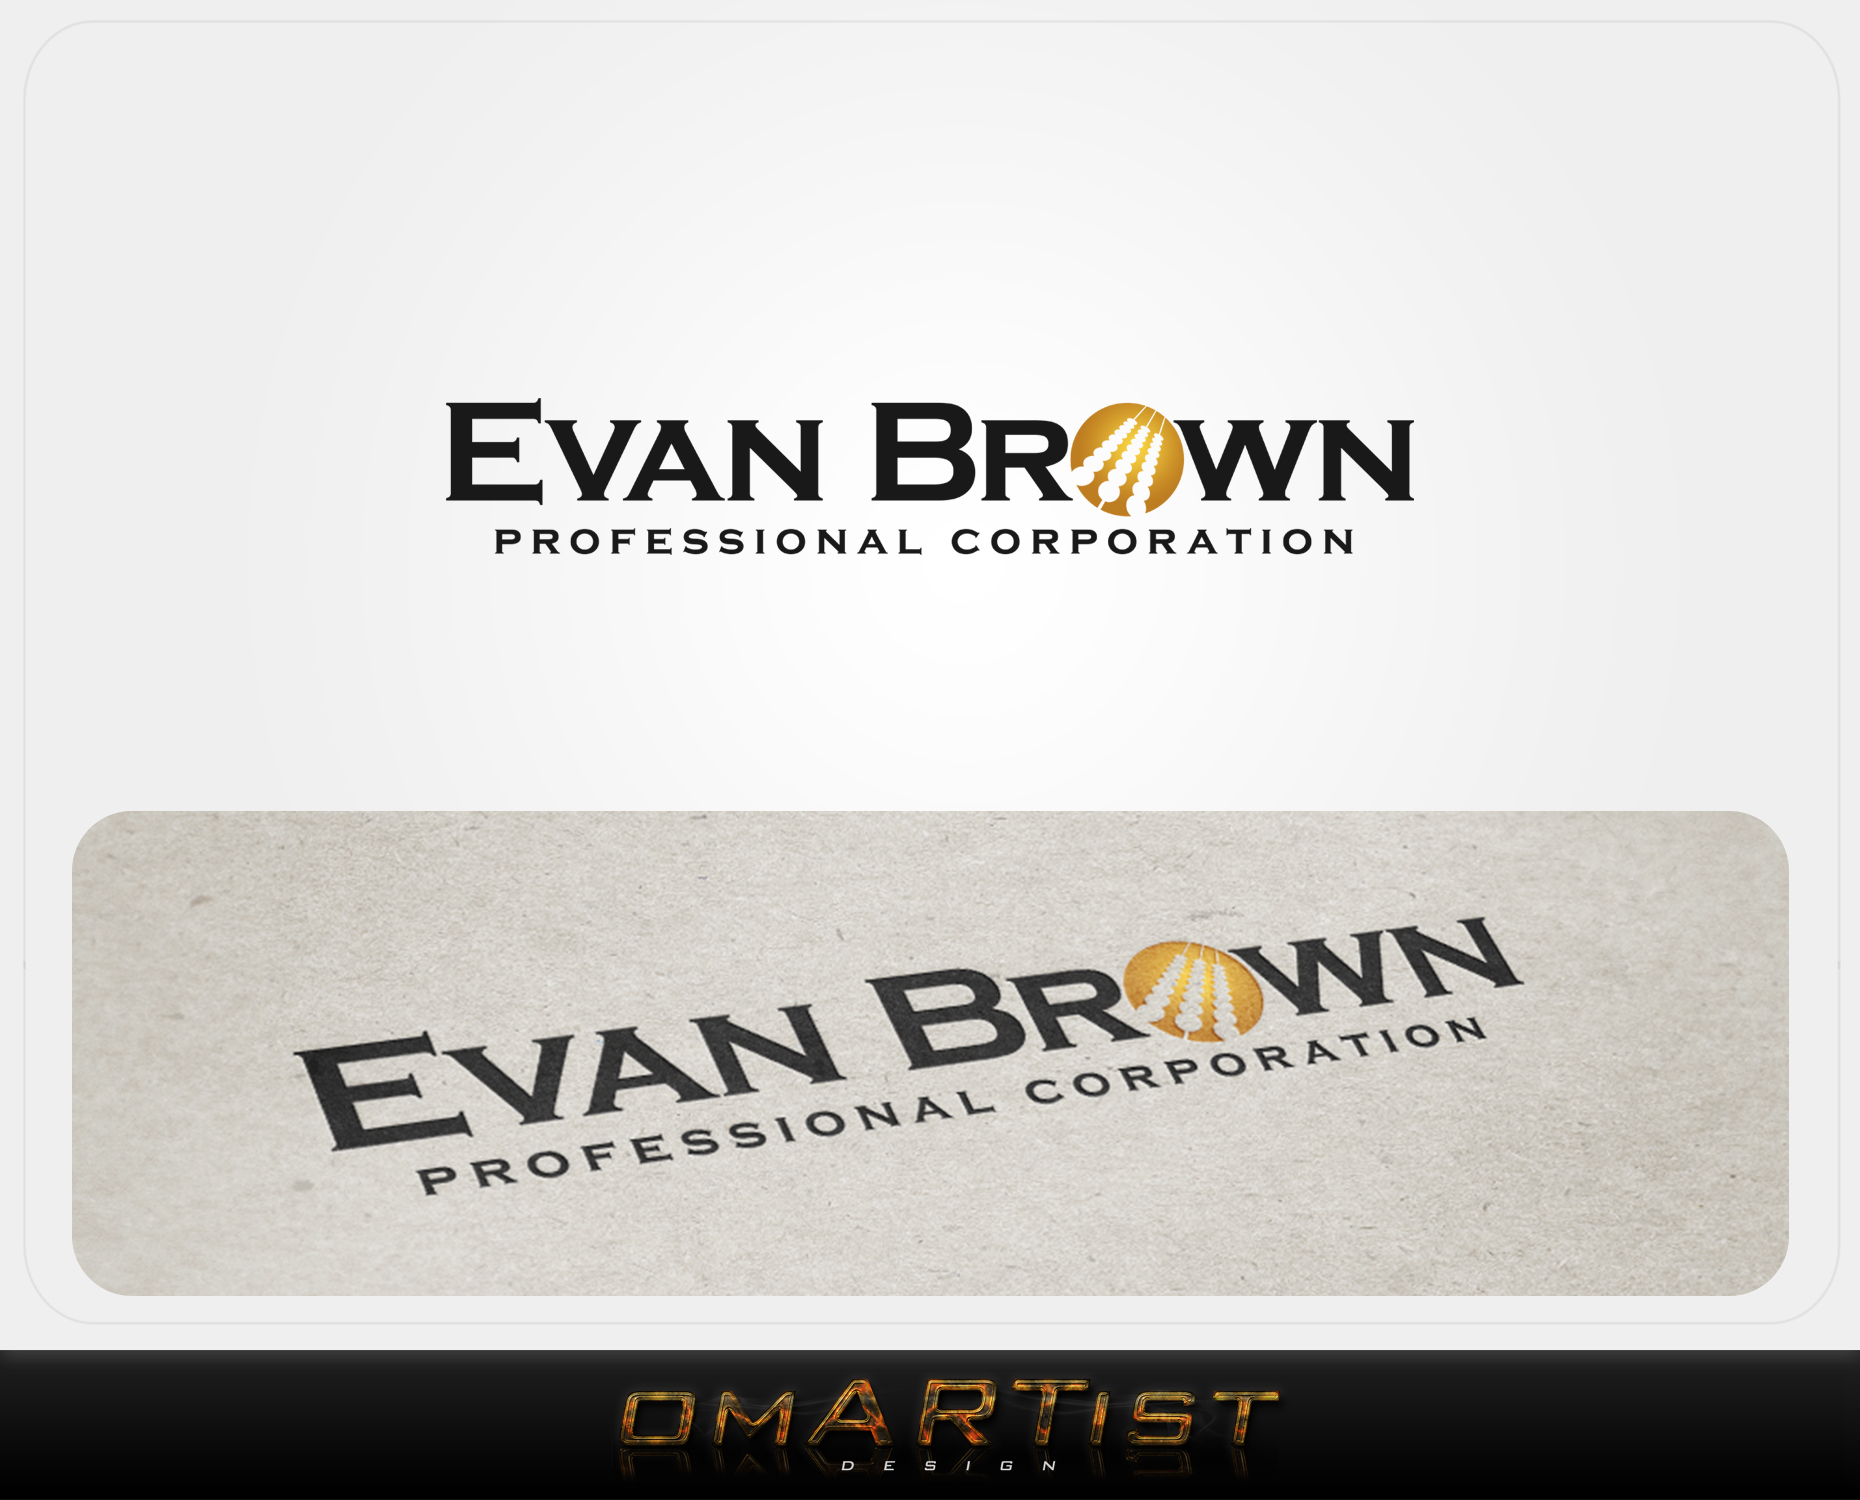 Logo Design by omARTist - Entry No. 85 in the Logo Design Contest Inspiring Logo Design for Evan Brown Professional Corporation.